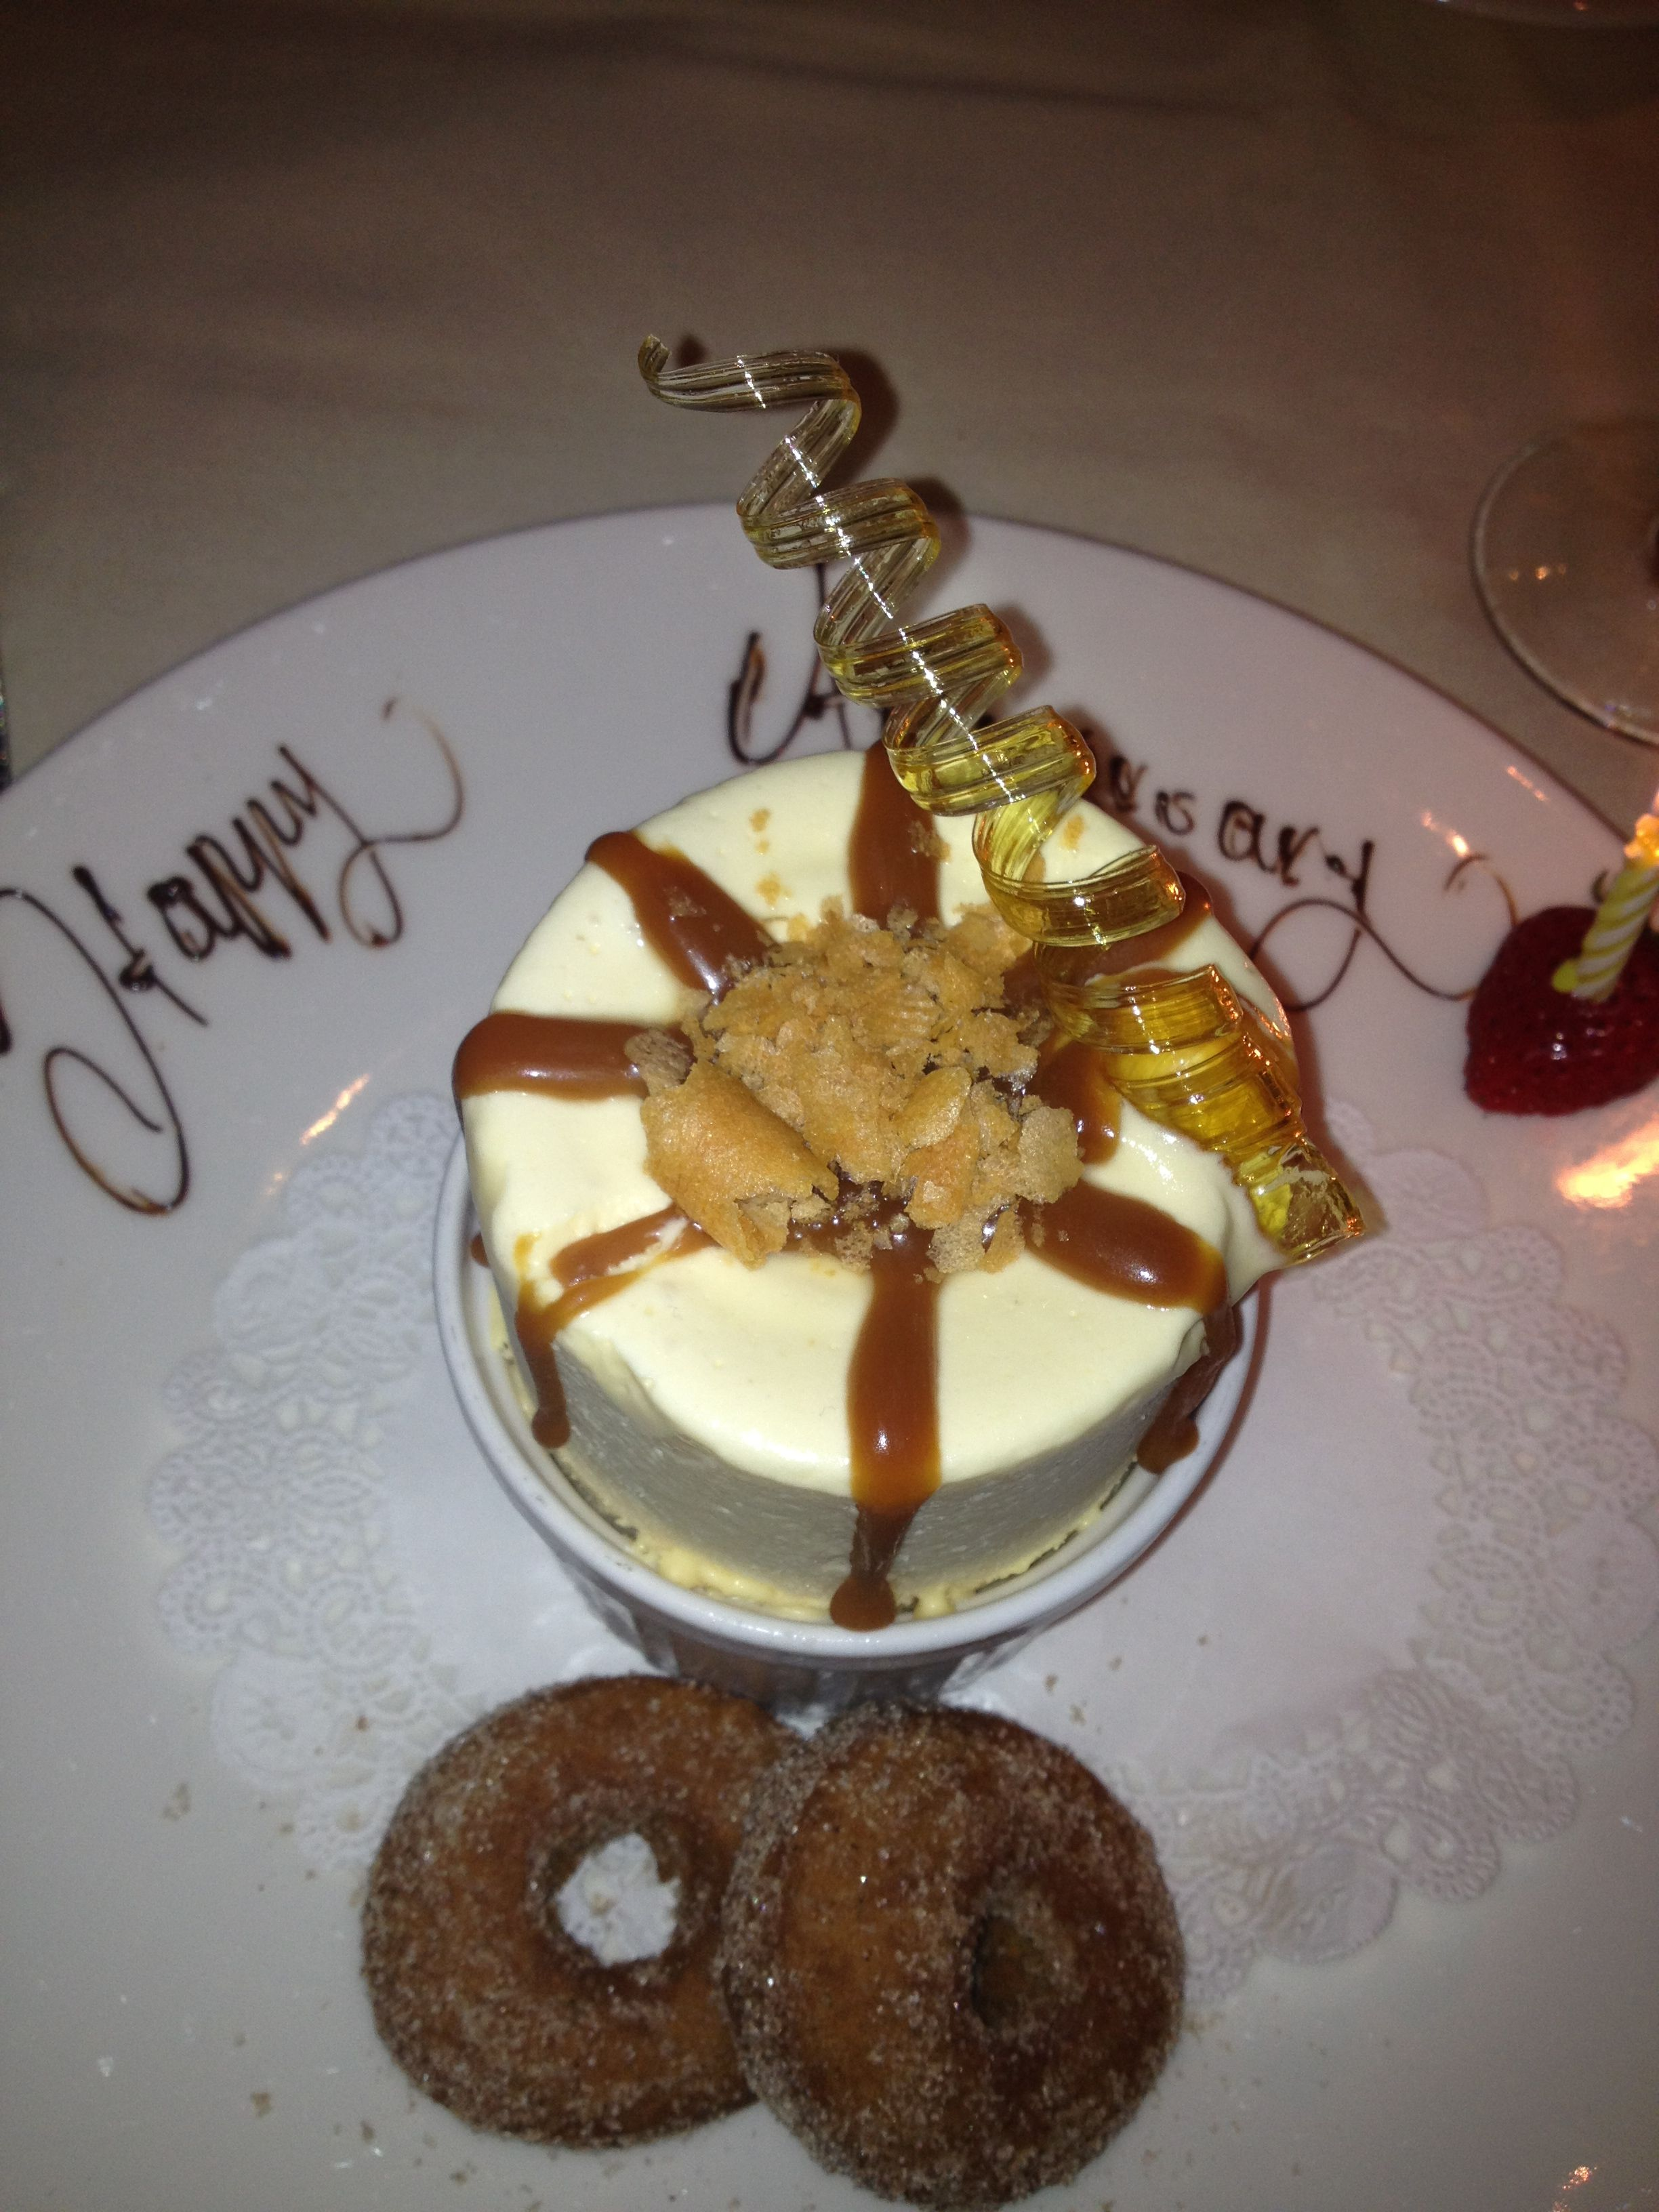 Frozen Caramel Souffle X20 Yonkers Ny Peter Kelly Is The Nicest Most Talented Chef We Enjoy A Large Holiday Gathering Here Eve Food Crawl Food Desserts